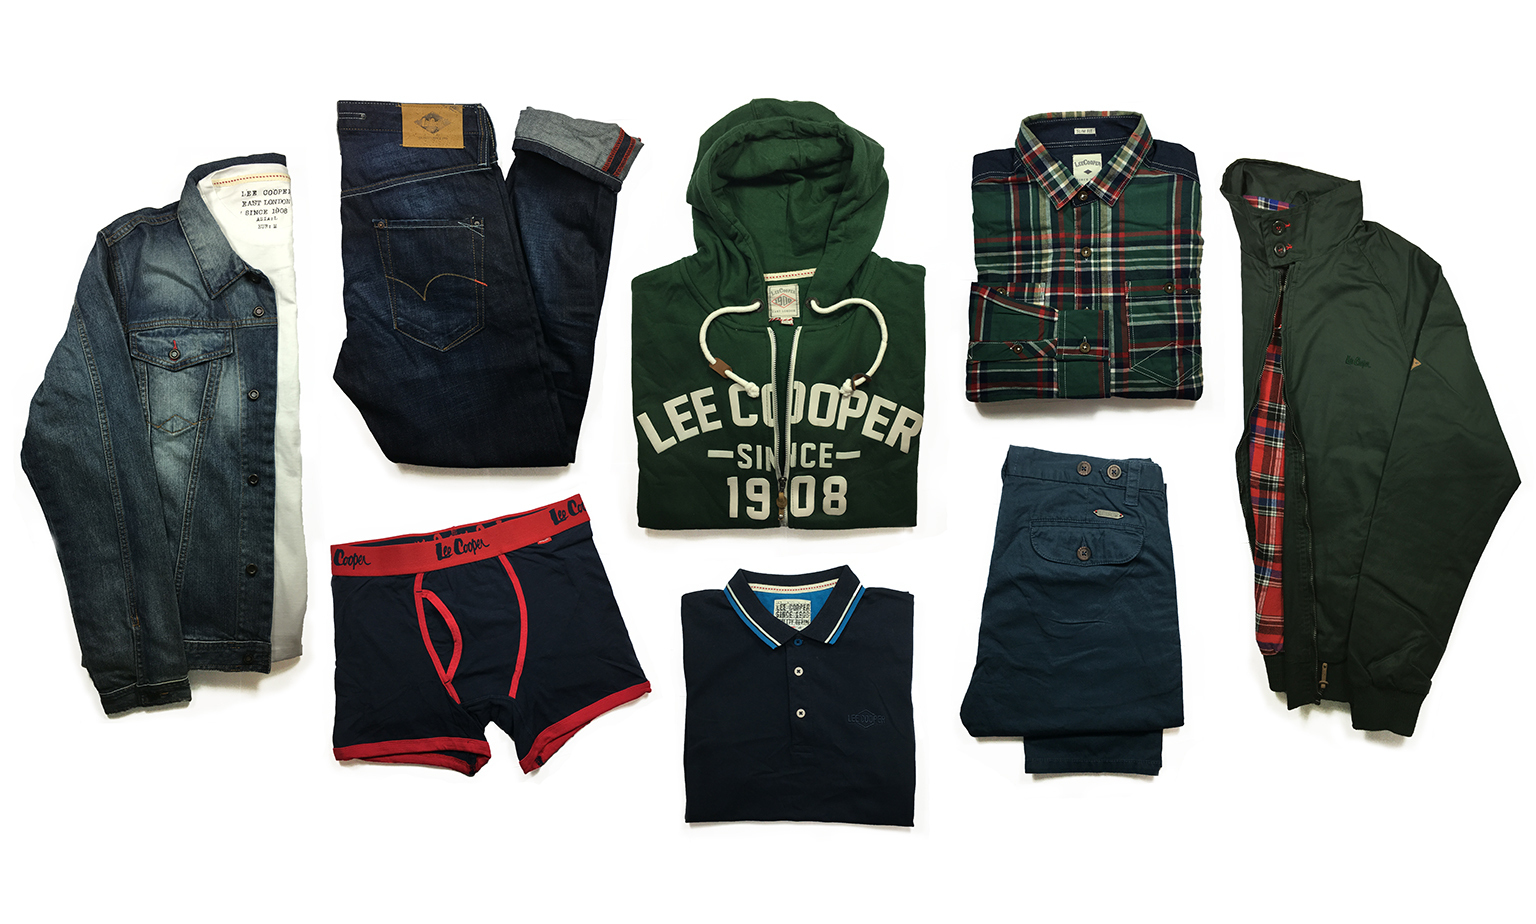 Up to 50% Off Lee Cooper